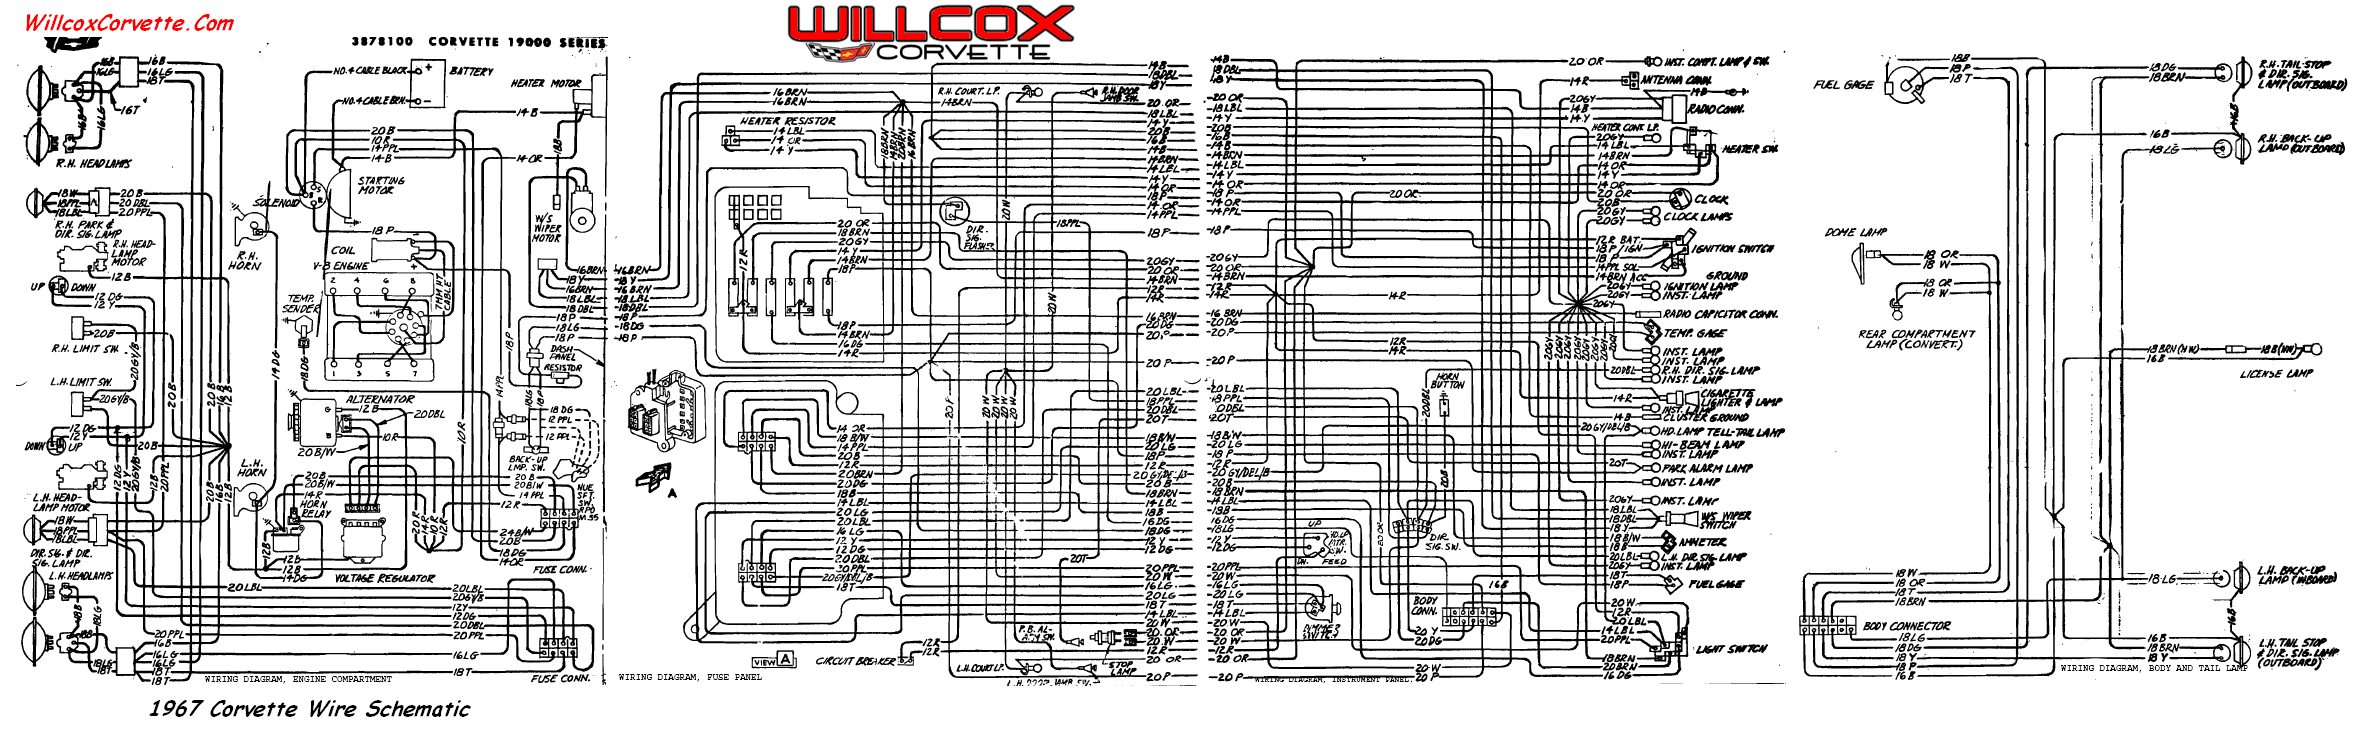 1967 Chevy Corvette Wiring Diagram - Data Wiring Diagrams •